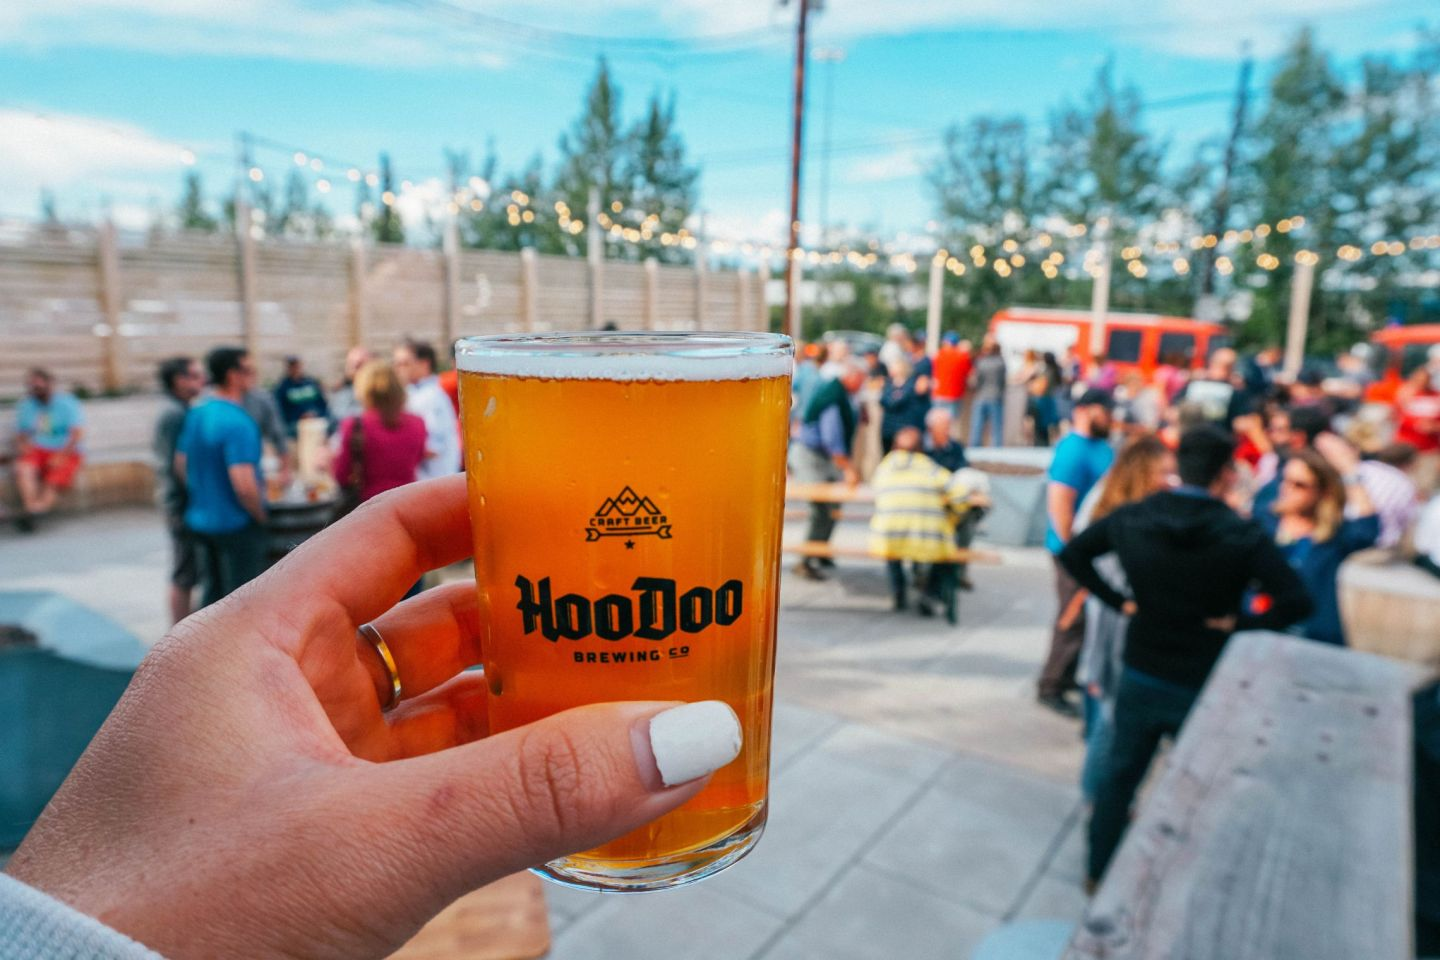 Visit HooDoo Brewery, a popular watering hole with great craft beer in Fairbanks, Alaska.